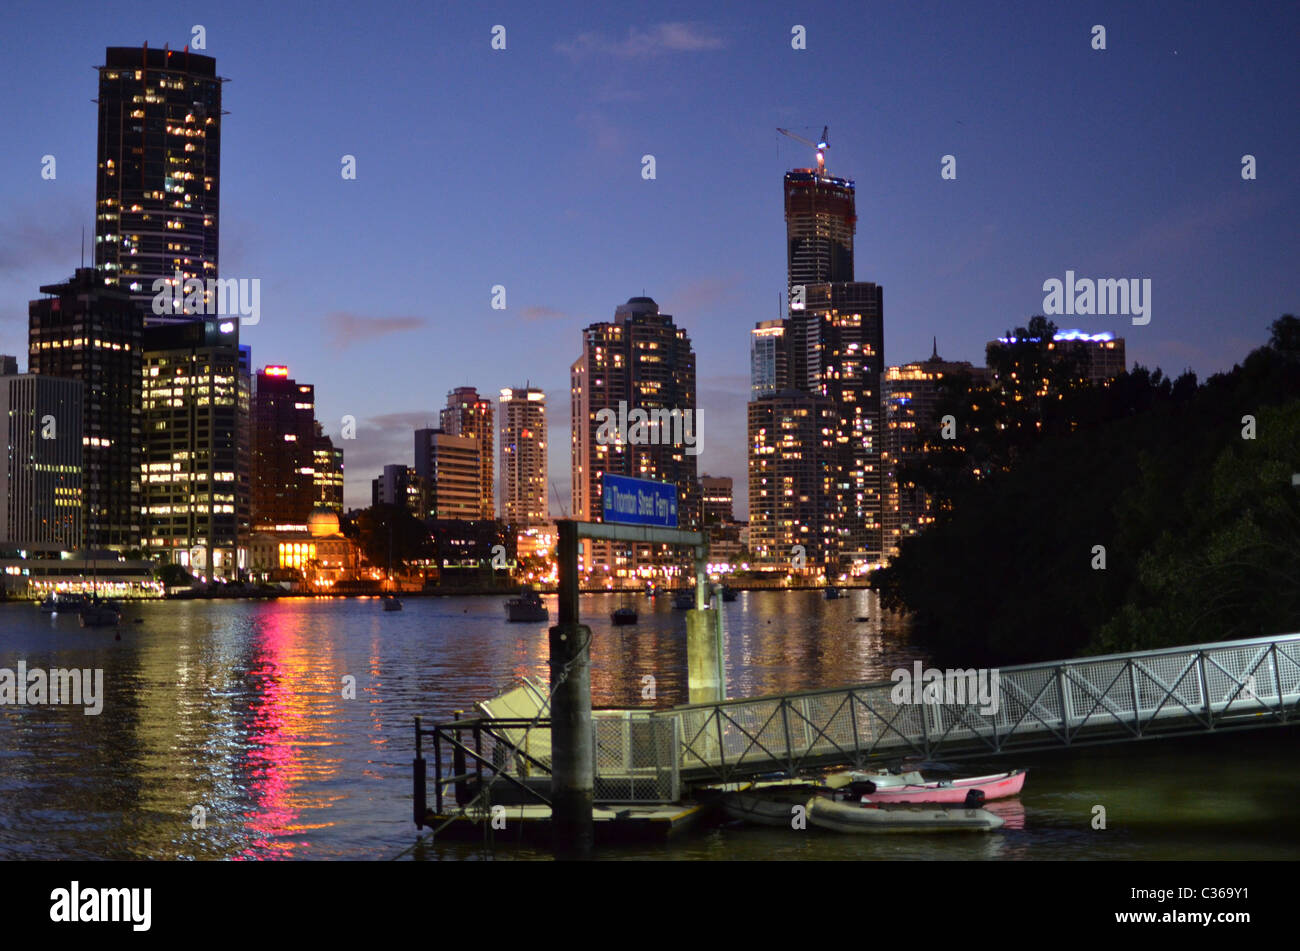 Brisbane city at night with the Brisbane River in the foreground. - Stock Image